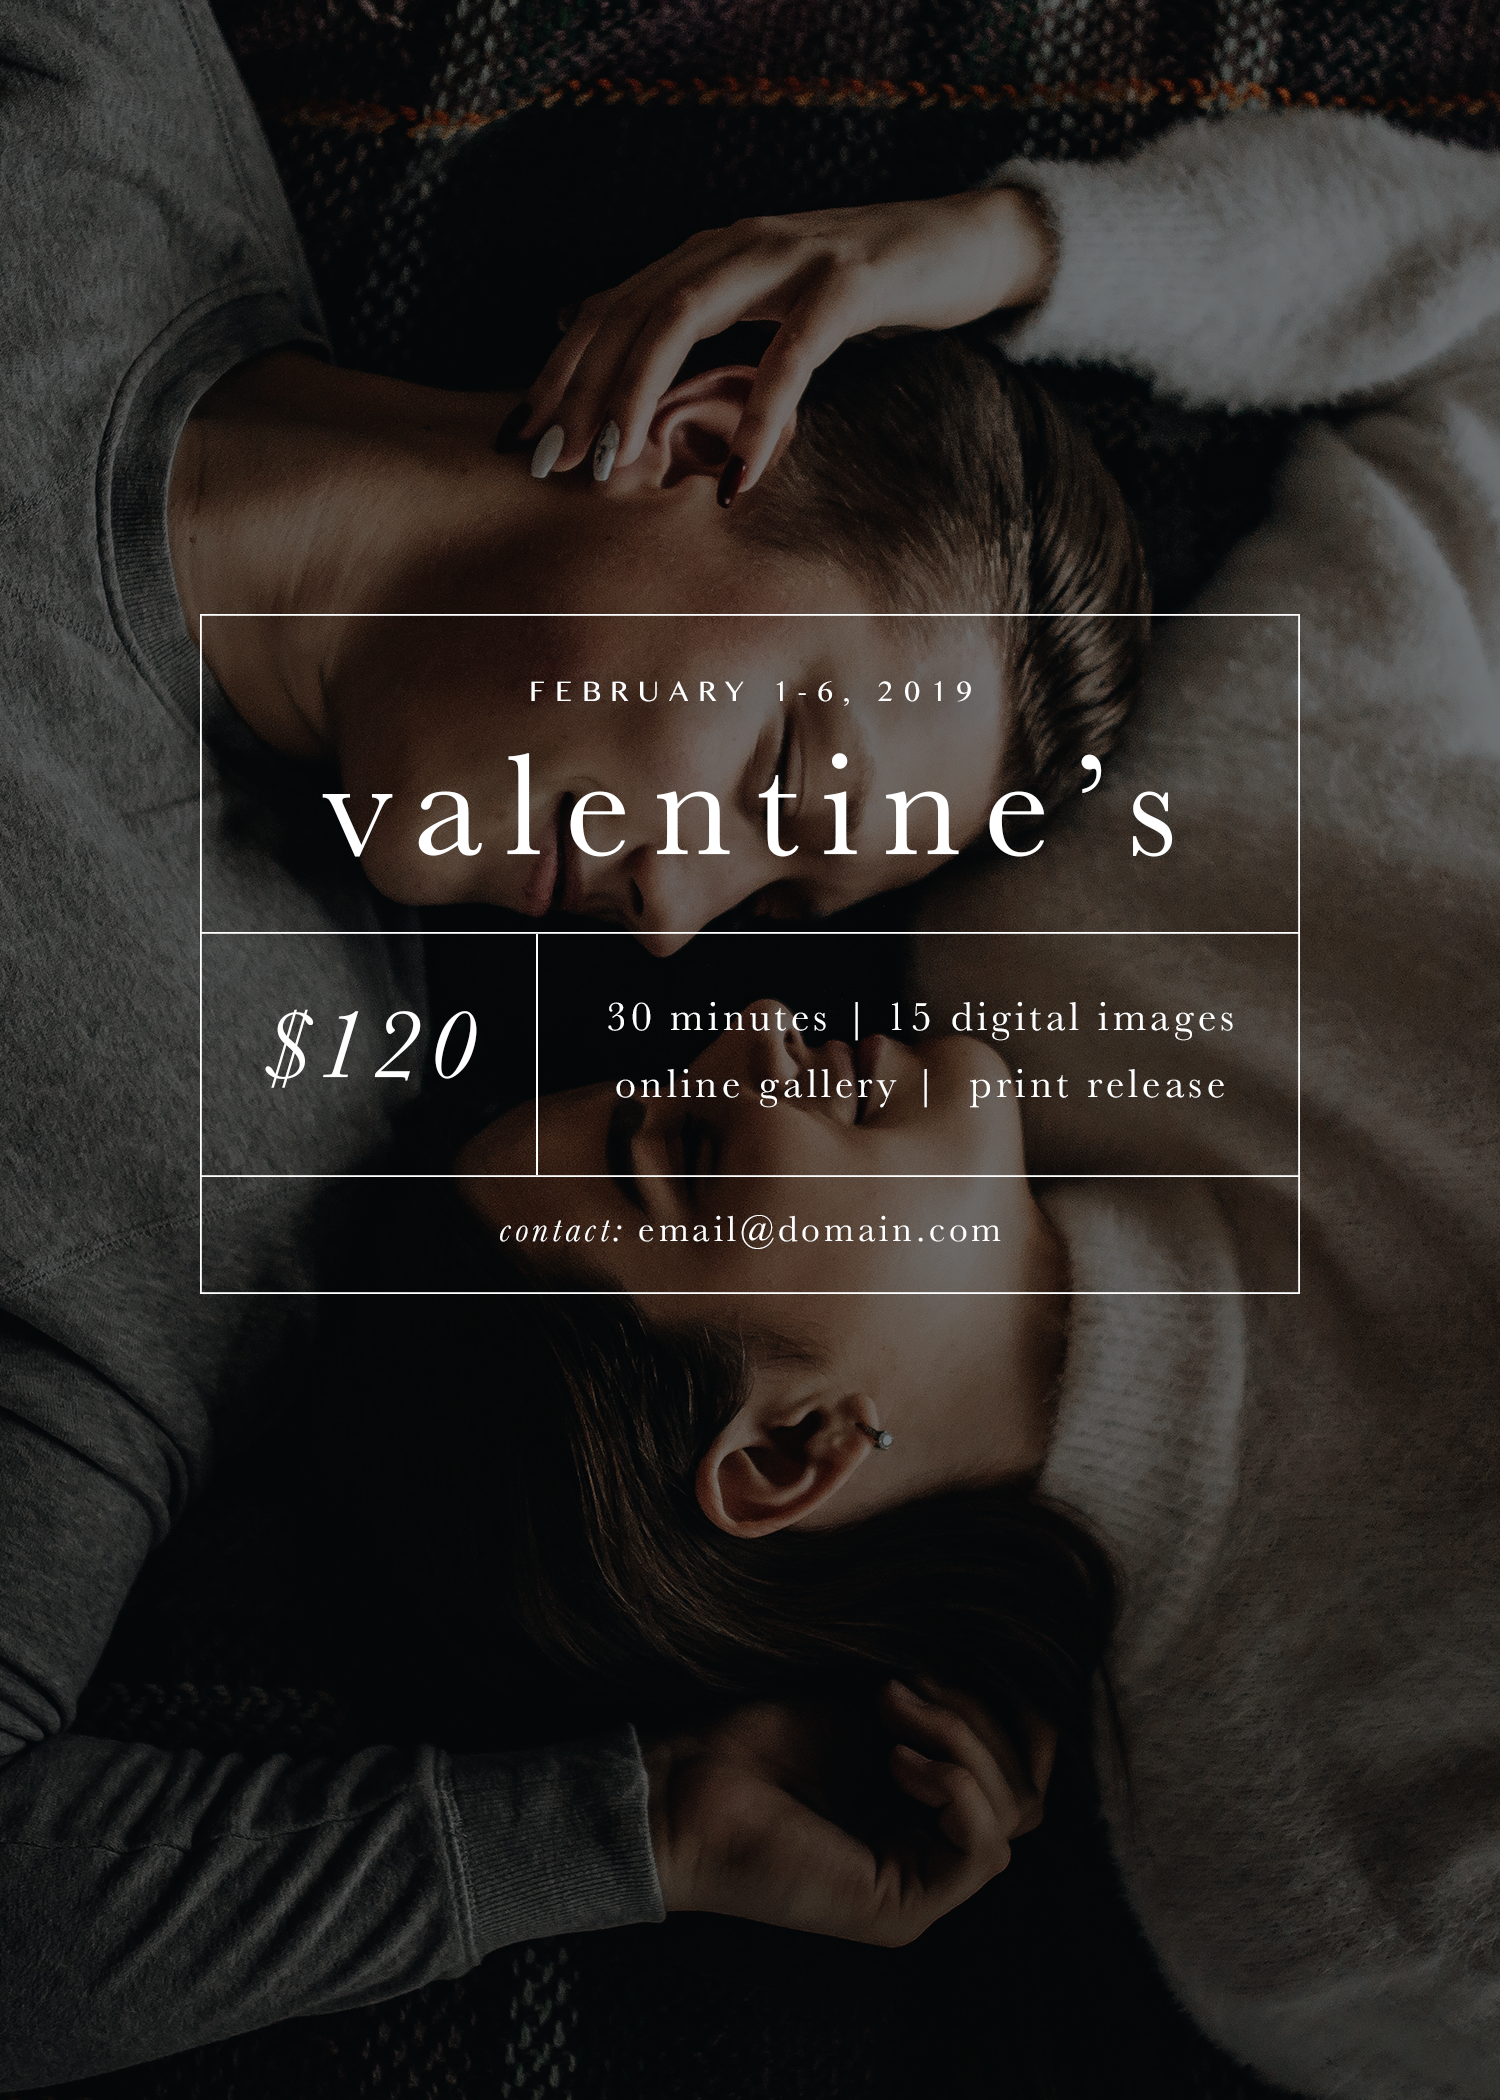 Valentine's Mini Session Template for Photographers | Valentine's Day | Mini Session Pricing Template | Social Media Template | Design Templates for Creative Entrepreneurs | Design Inspiration | Graphic Design | Molly Ho Studio